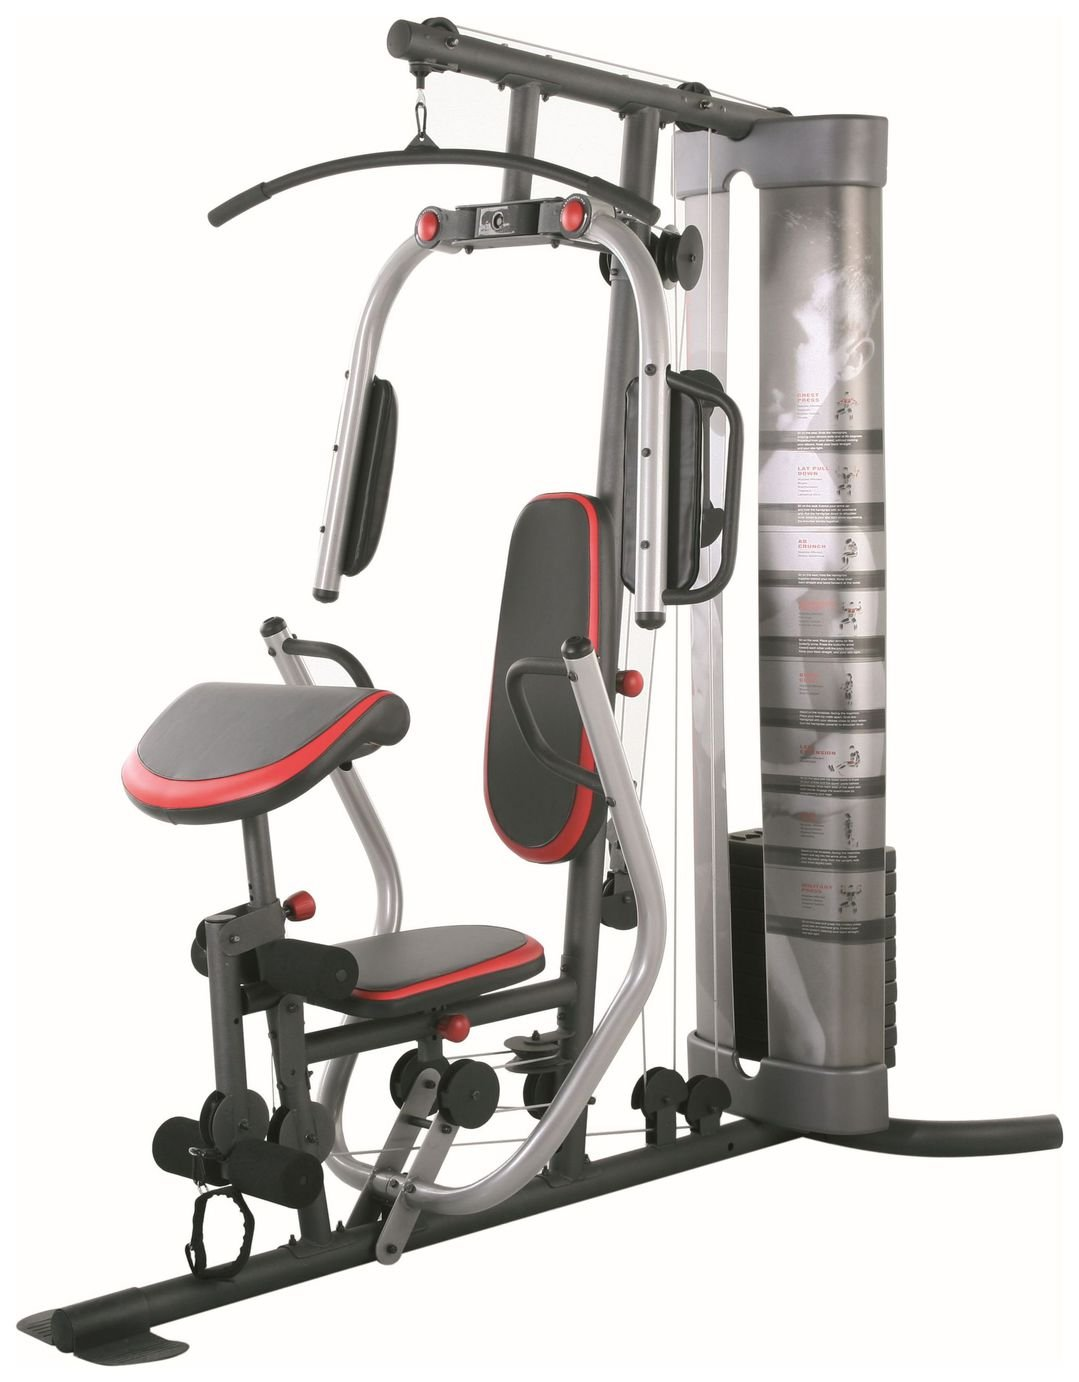 Weider 5500 Multi Gym